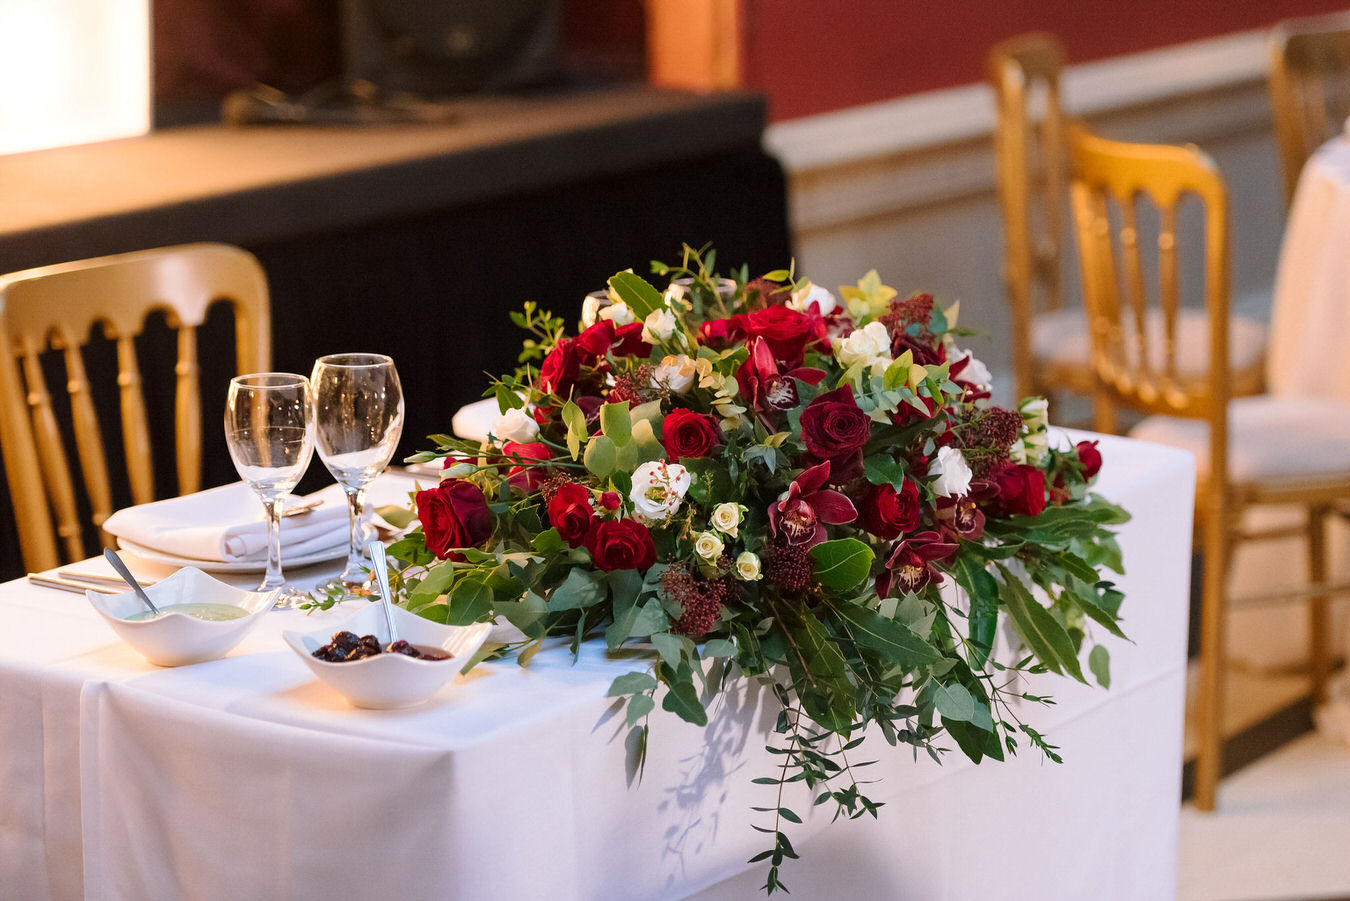 Sweetheart table setting with a winter red and white flower arrangement, a couple of glasses and white napkins